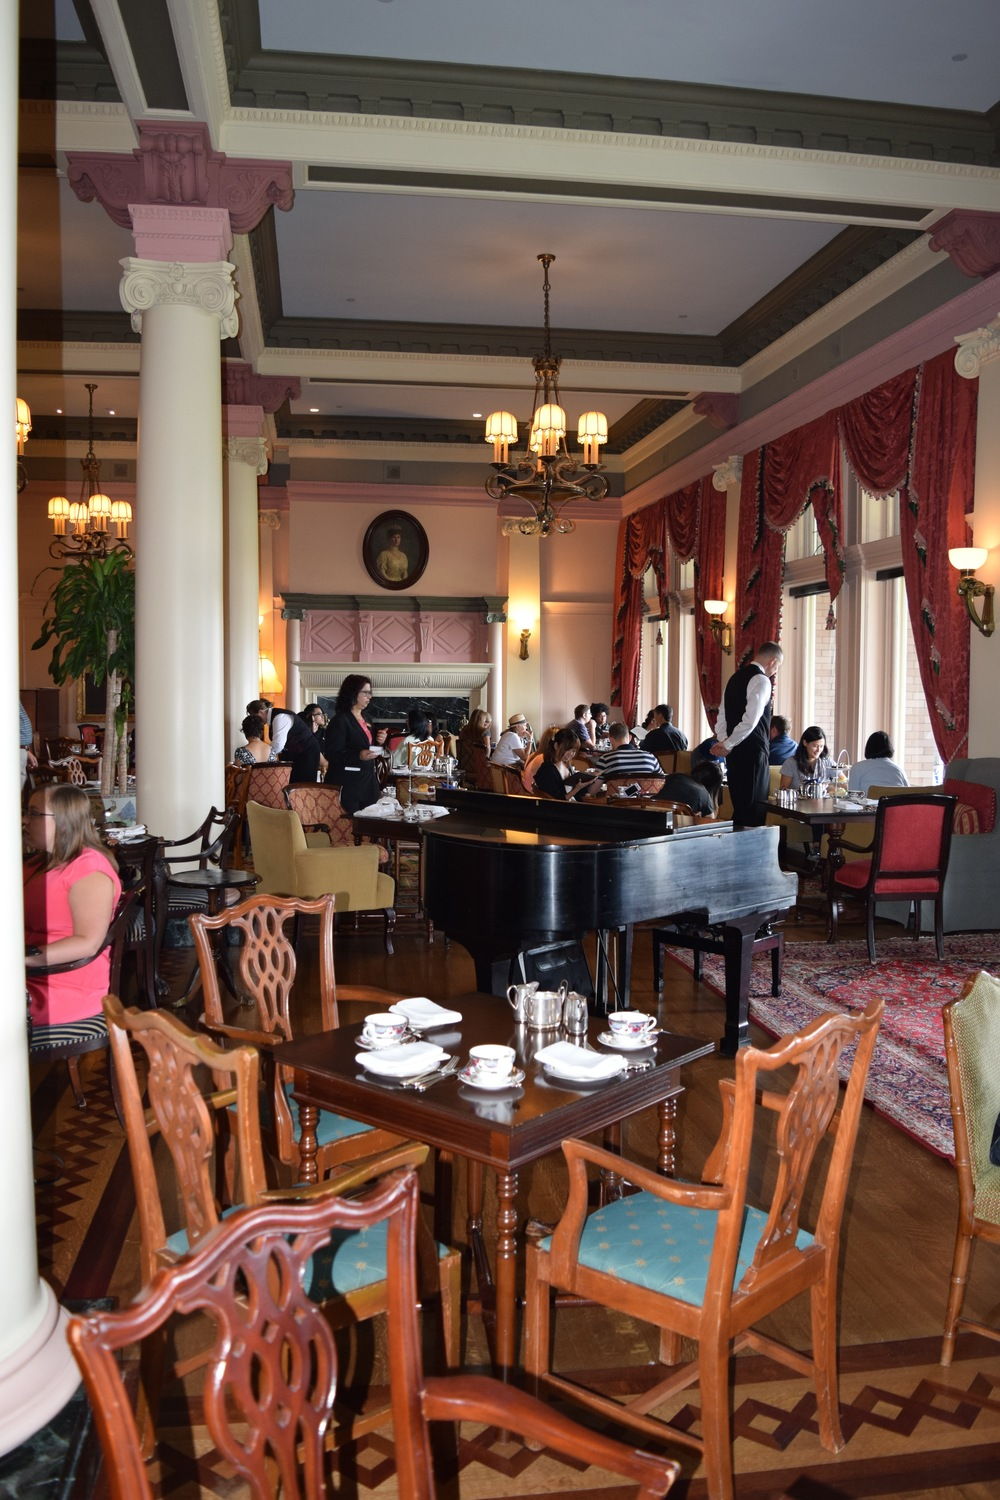 Tea Room at The Empress Hotel, Victoria, British Columbia